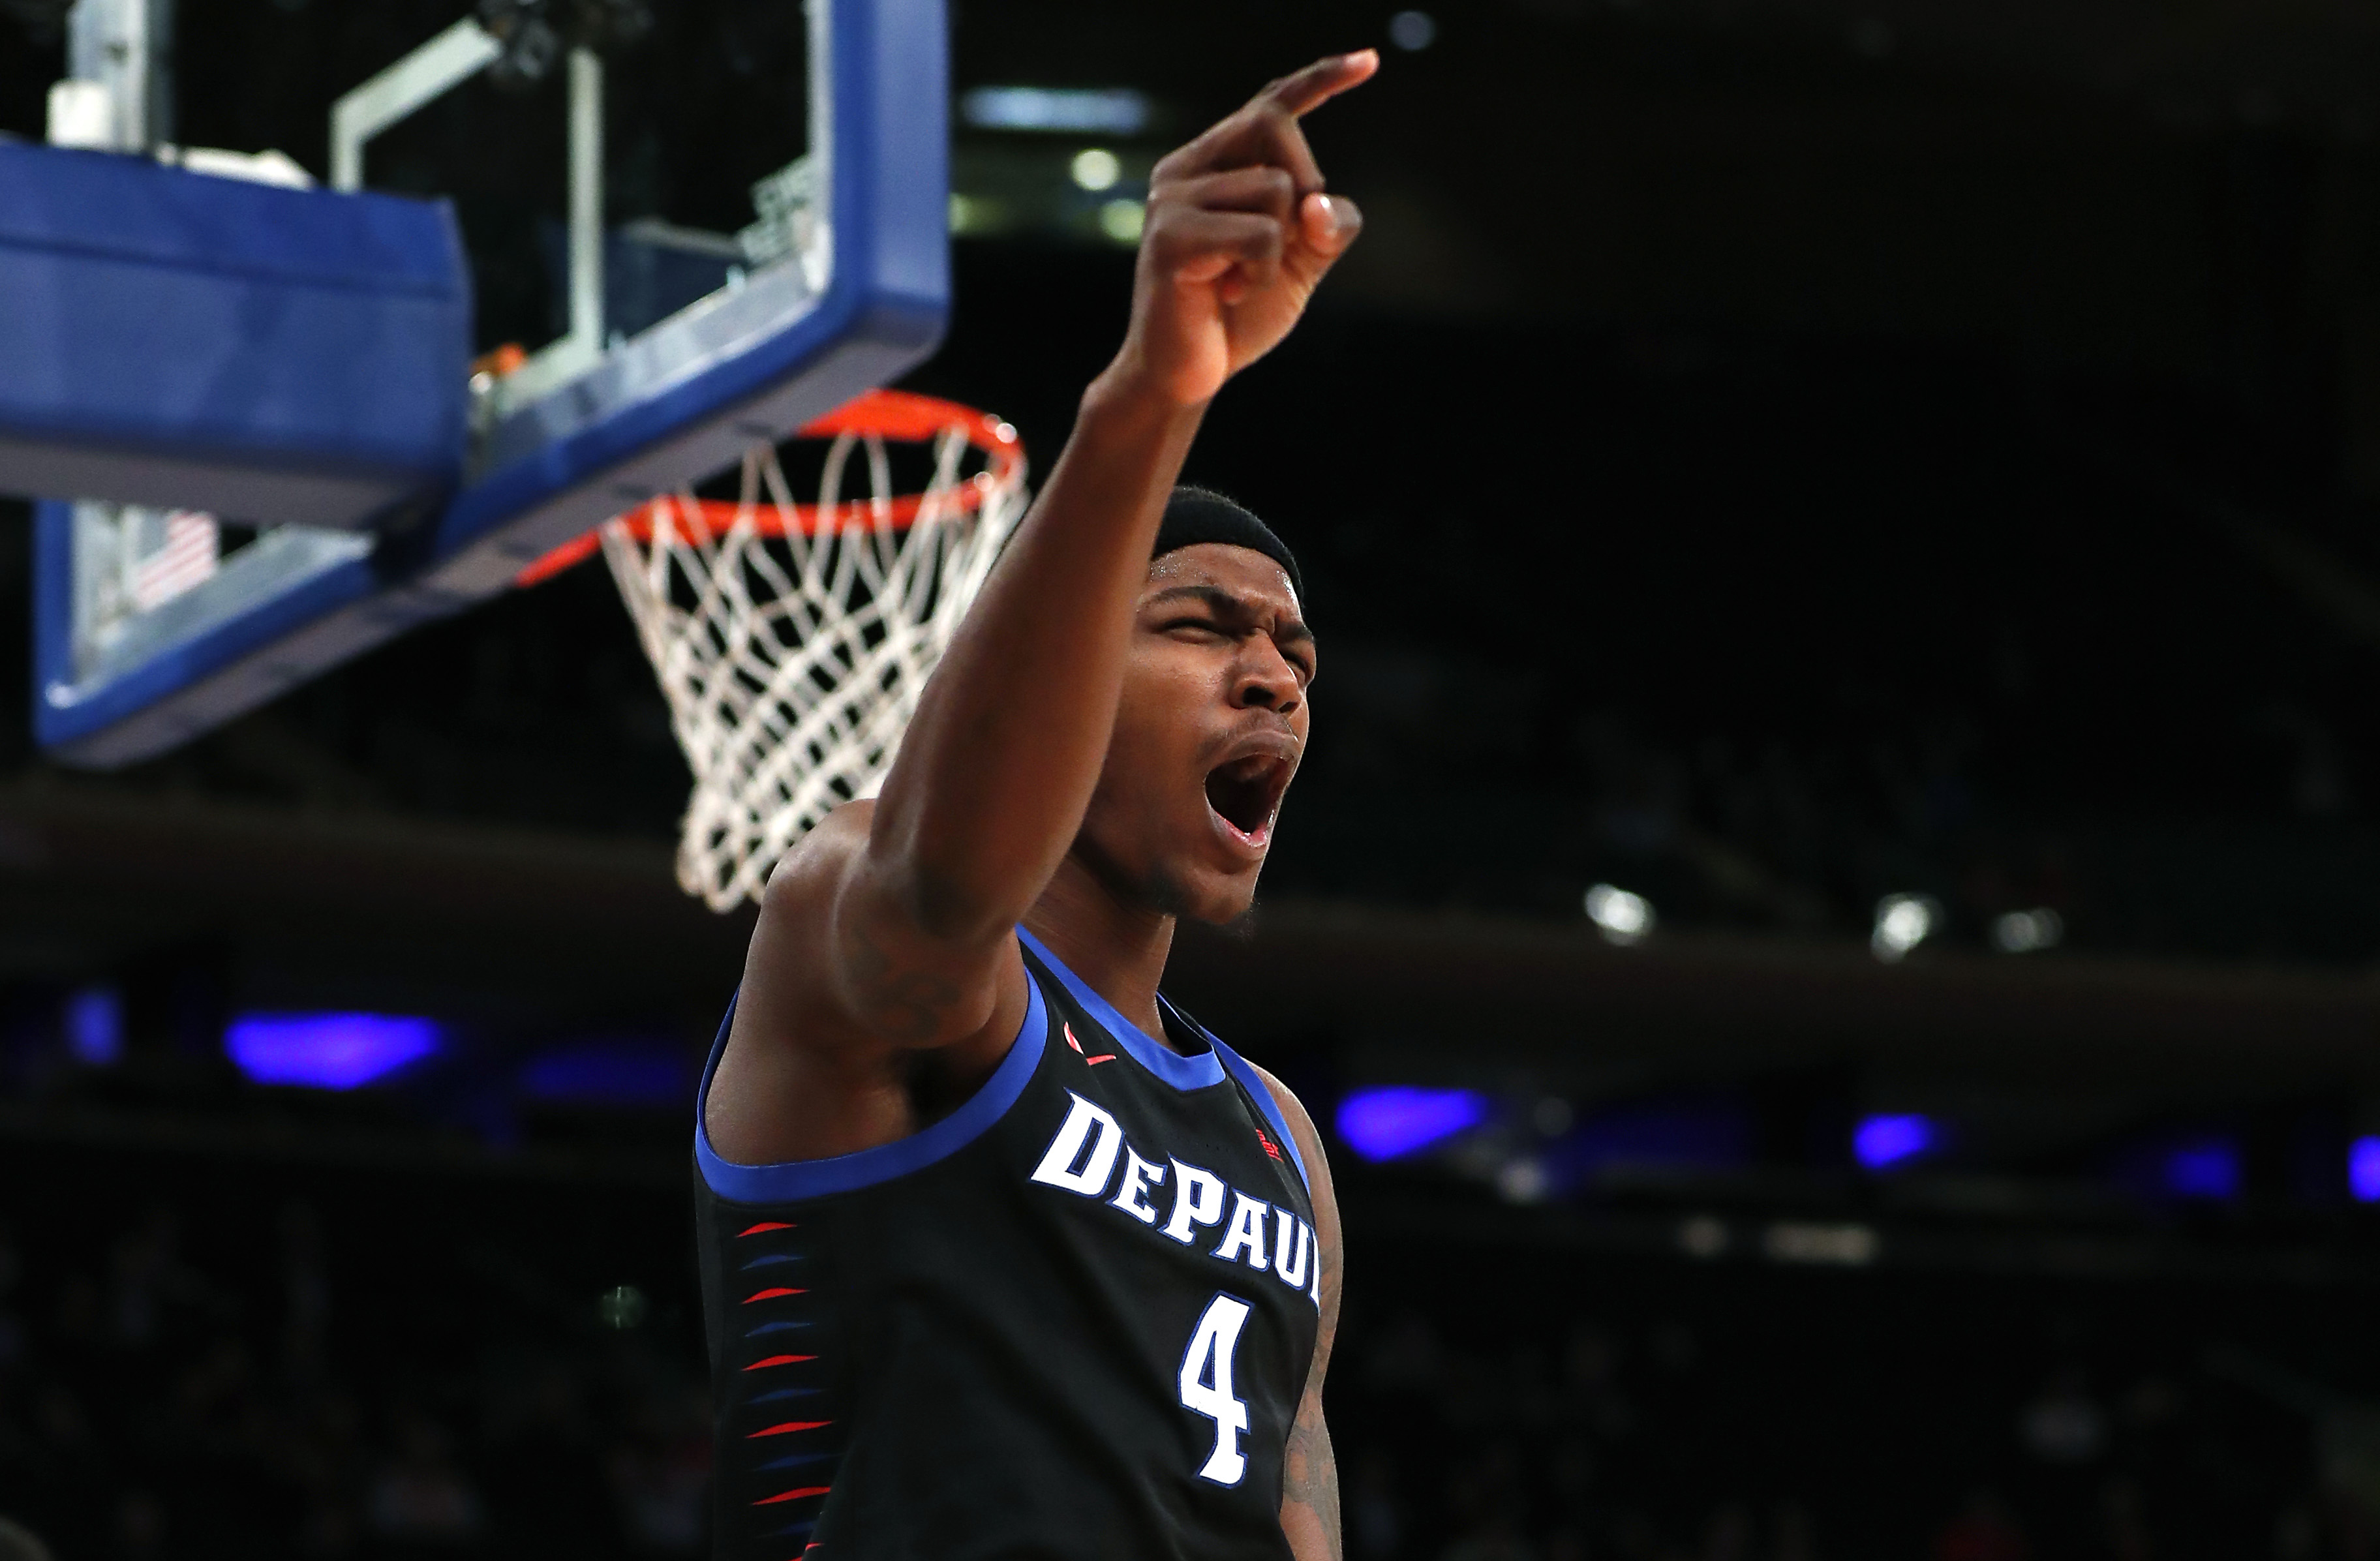 Mar 11, 2020; New York, New York, USA; DePaul Blue Demons forward Paul Reed (4) reacts after scoring against the Xavier Musketeers during the second half of Big East tournament at Madison Square Garden. Mandatory Credit: